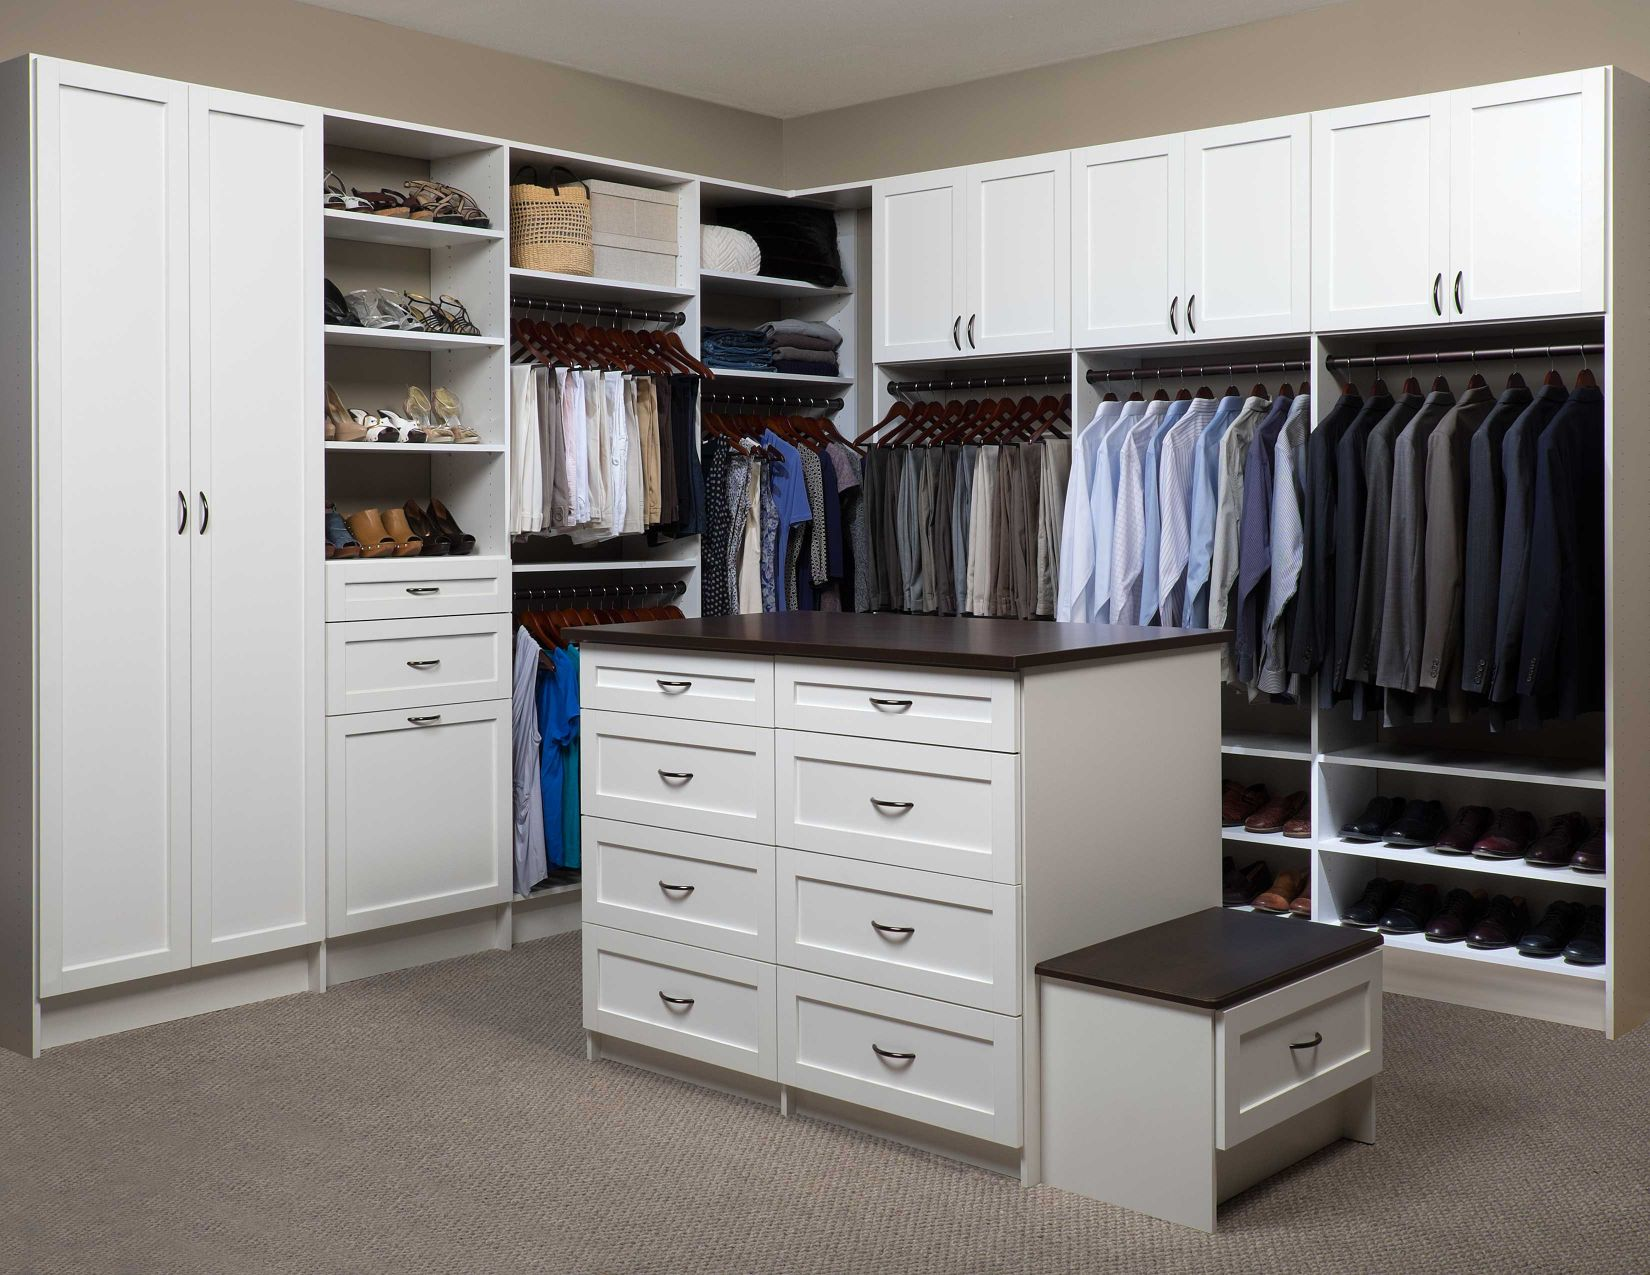 Walkin Closet Cabinets Custom Walk In Closet Designs Lancaster Pa Susquehanna Garage